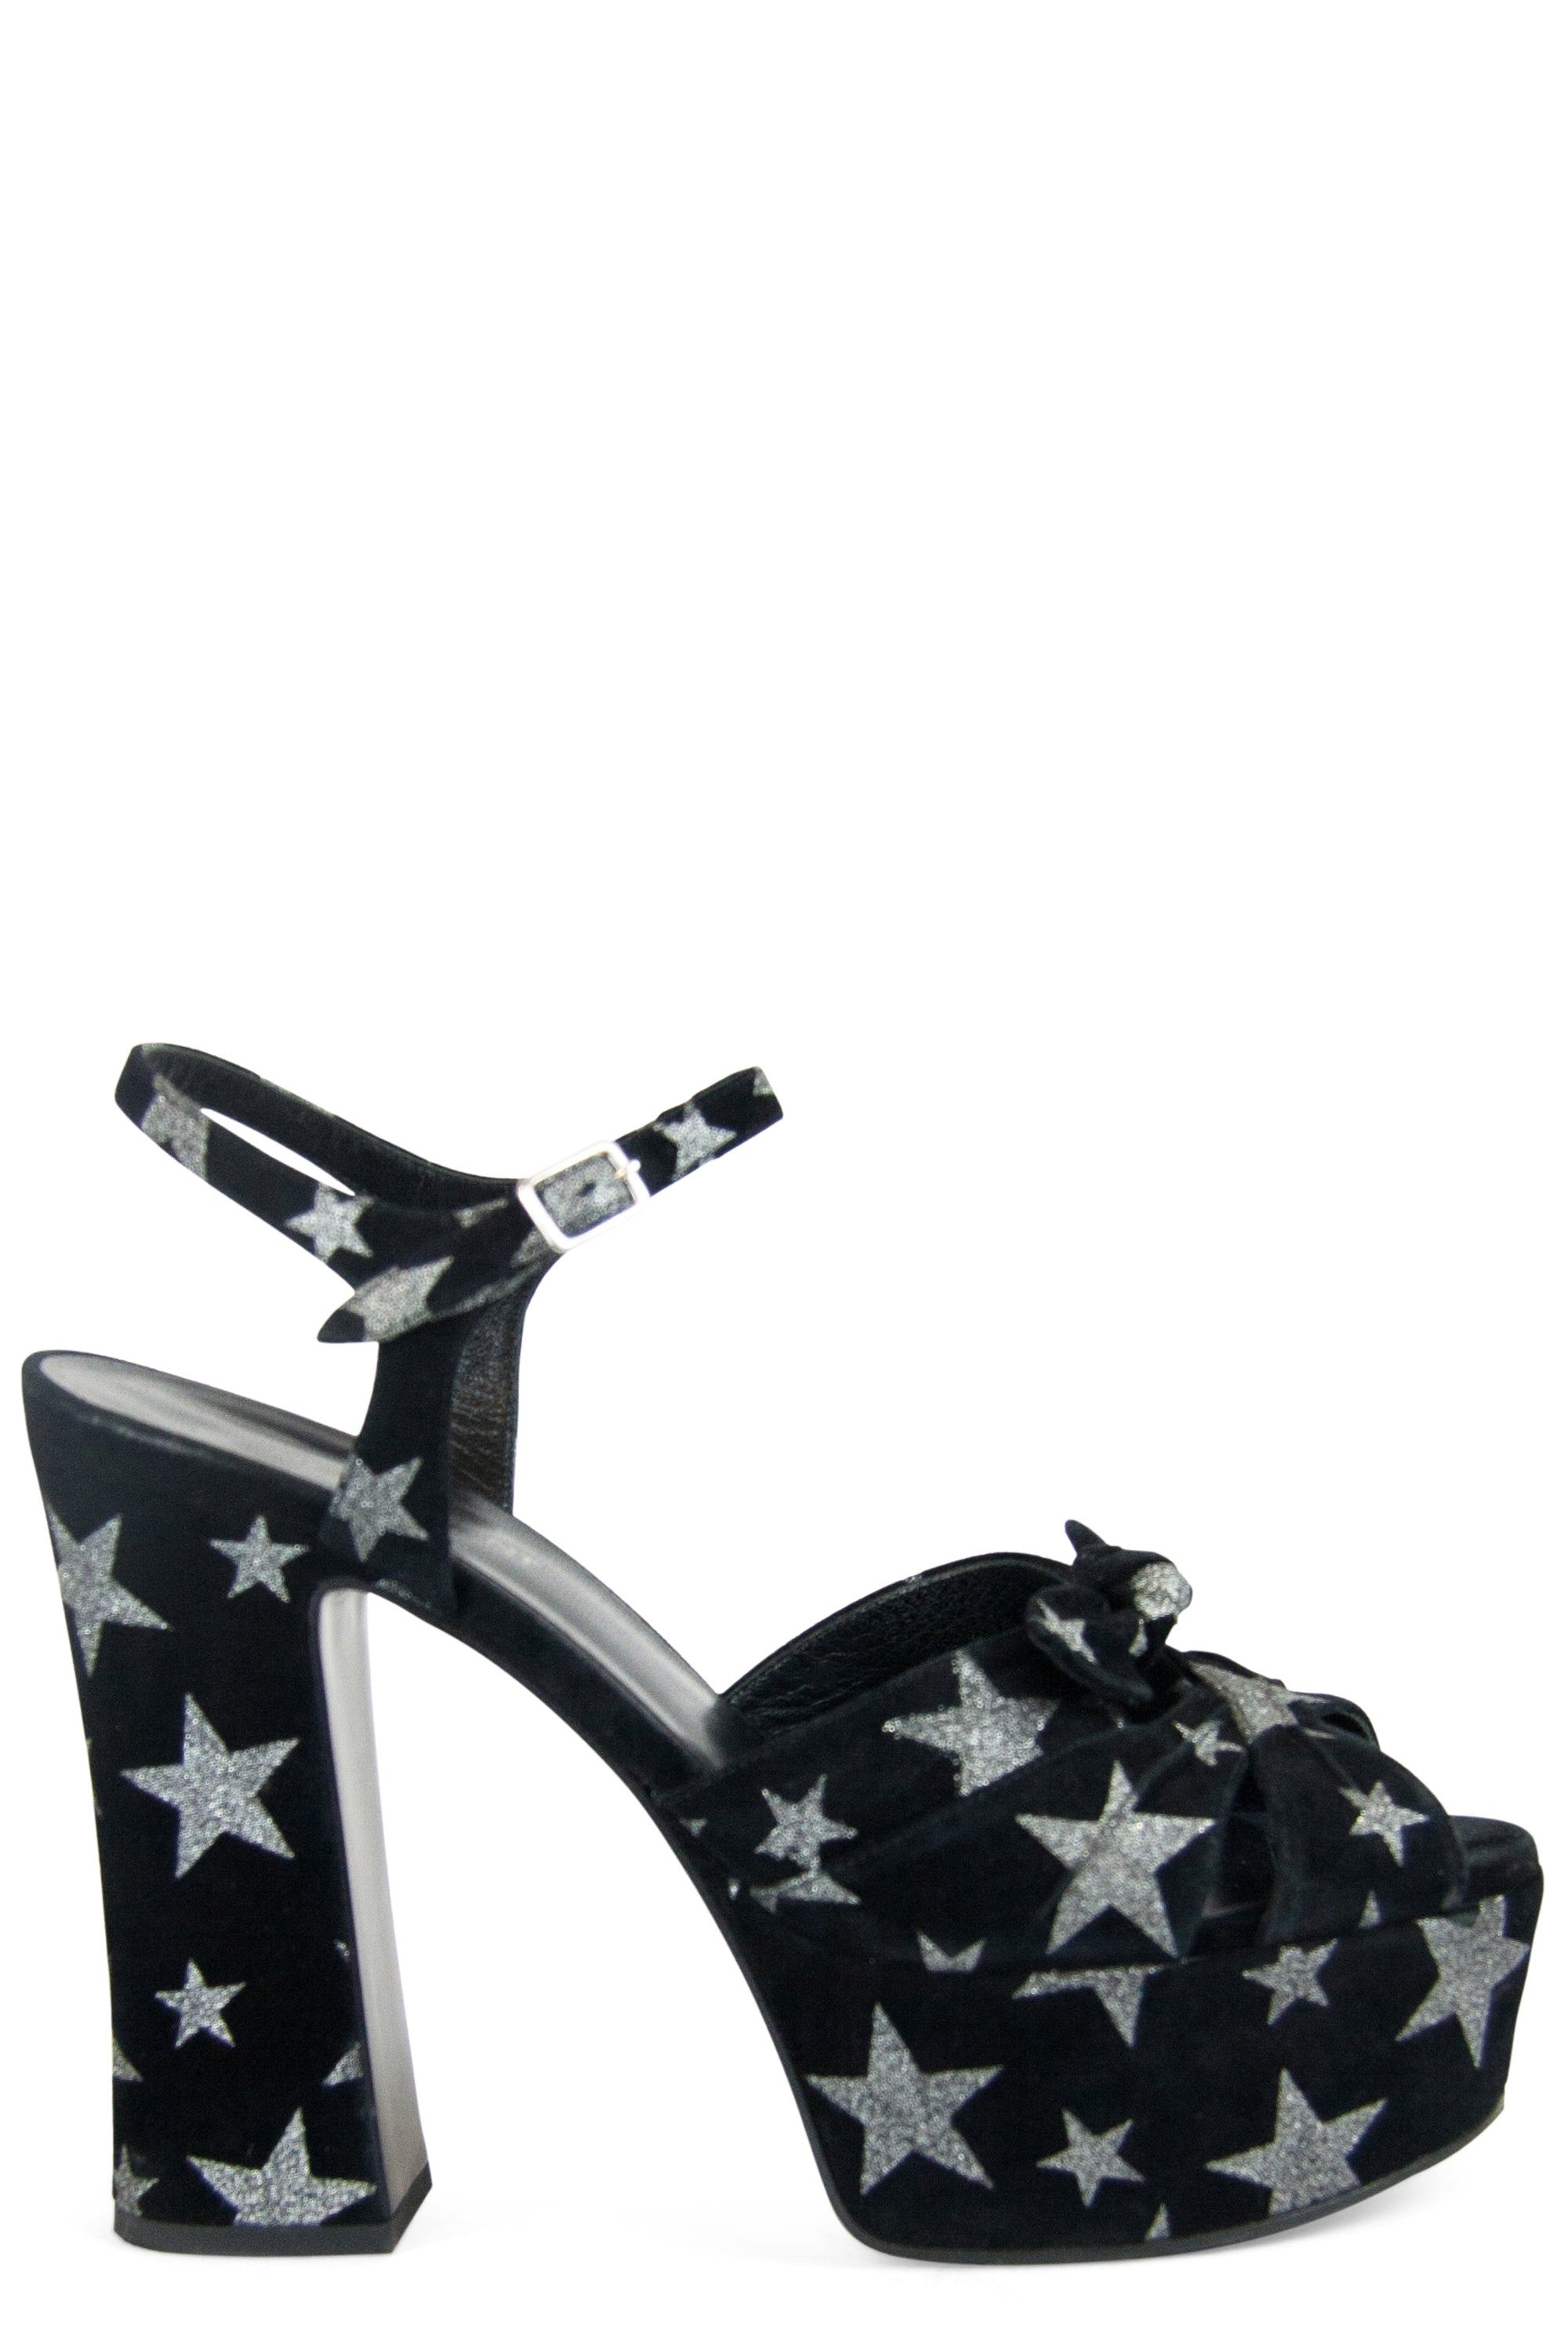 SAINT LAURENT Candy Sandals